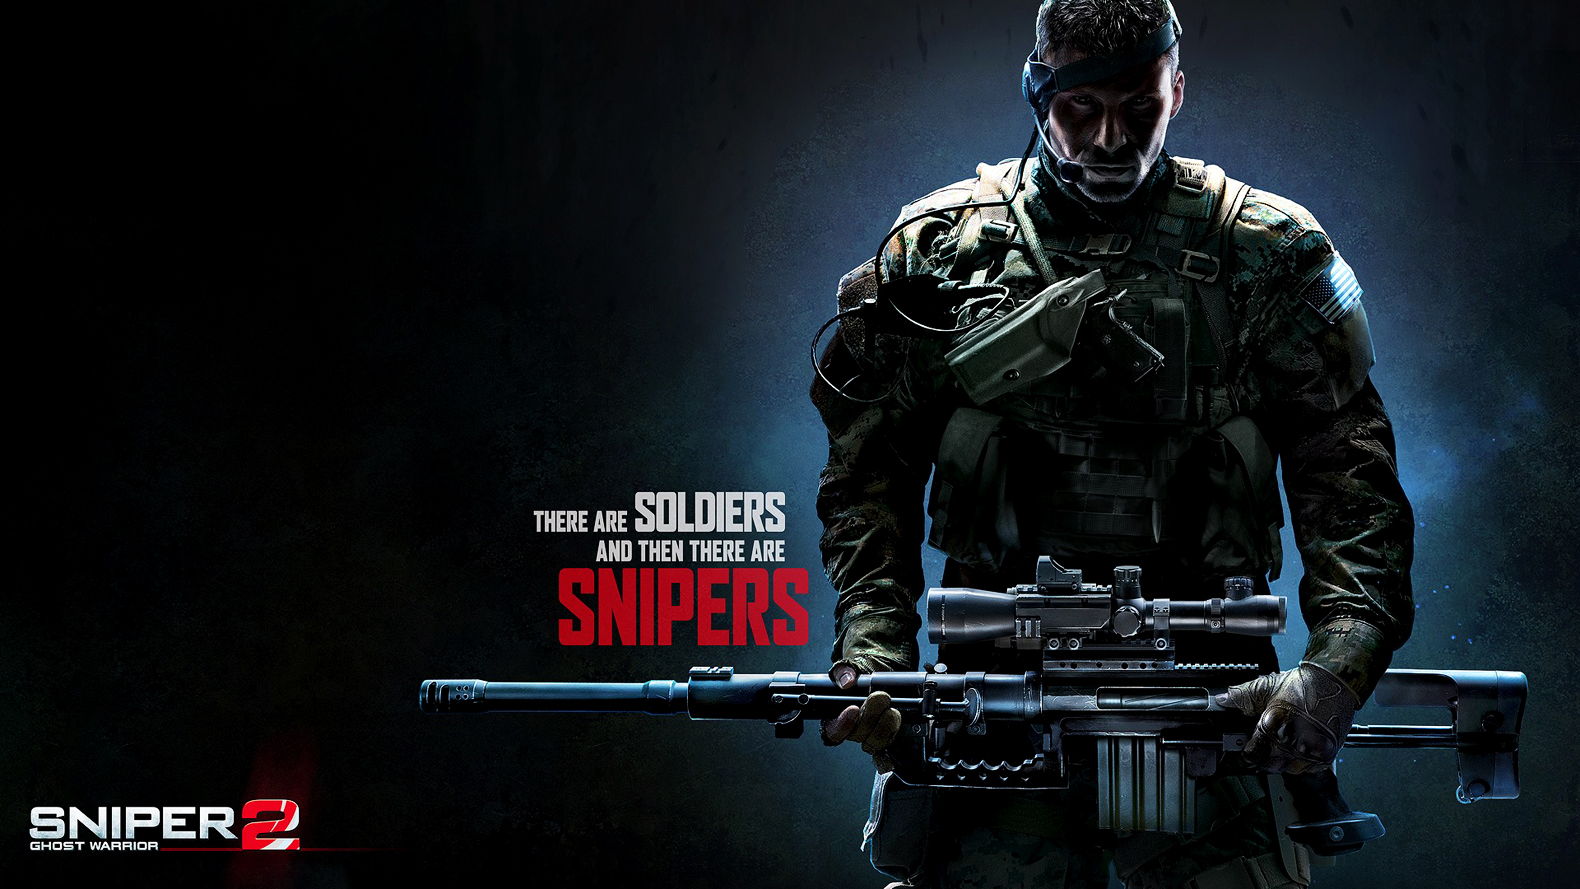 Ghost Recon Sniper Wallpaper hd Sniper 2 Ghost Warrior hd 1580x889